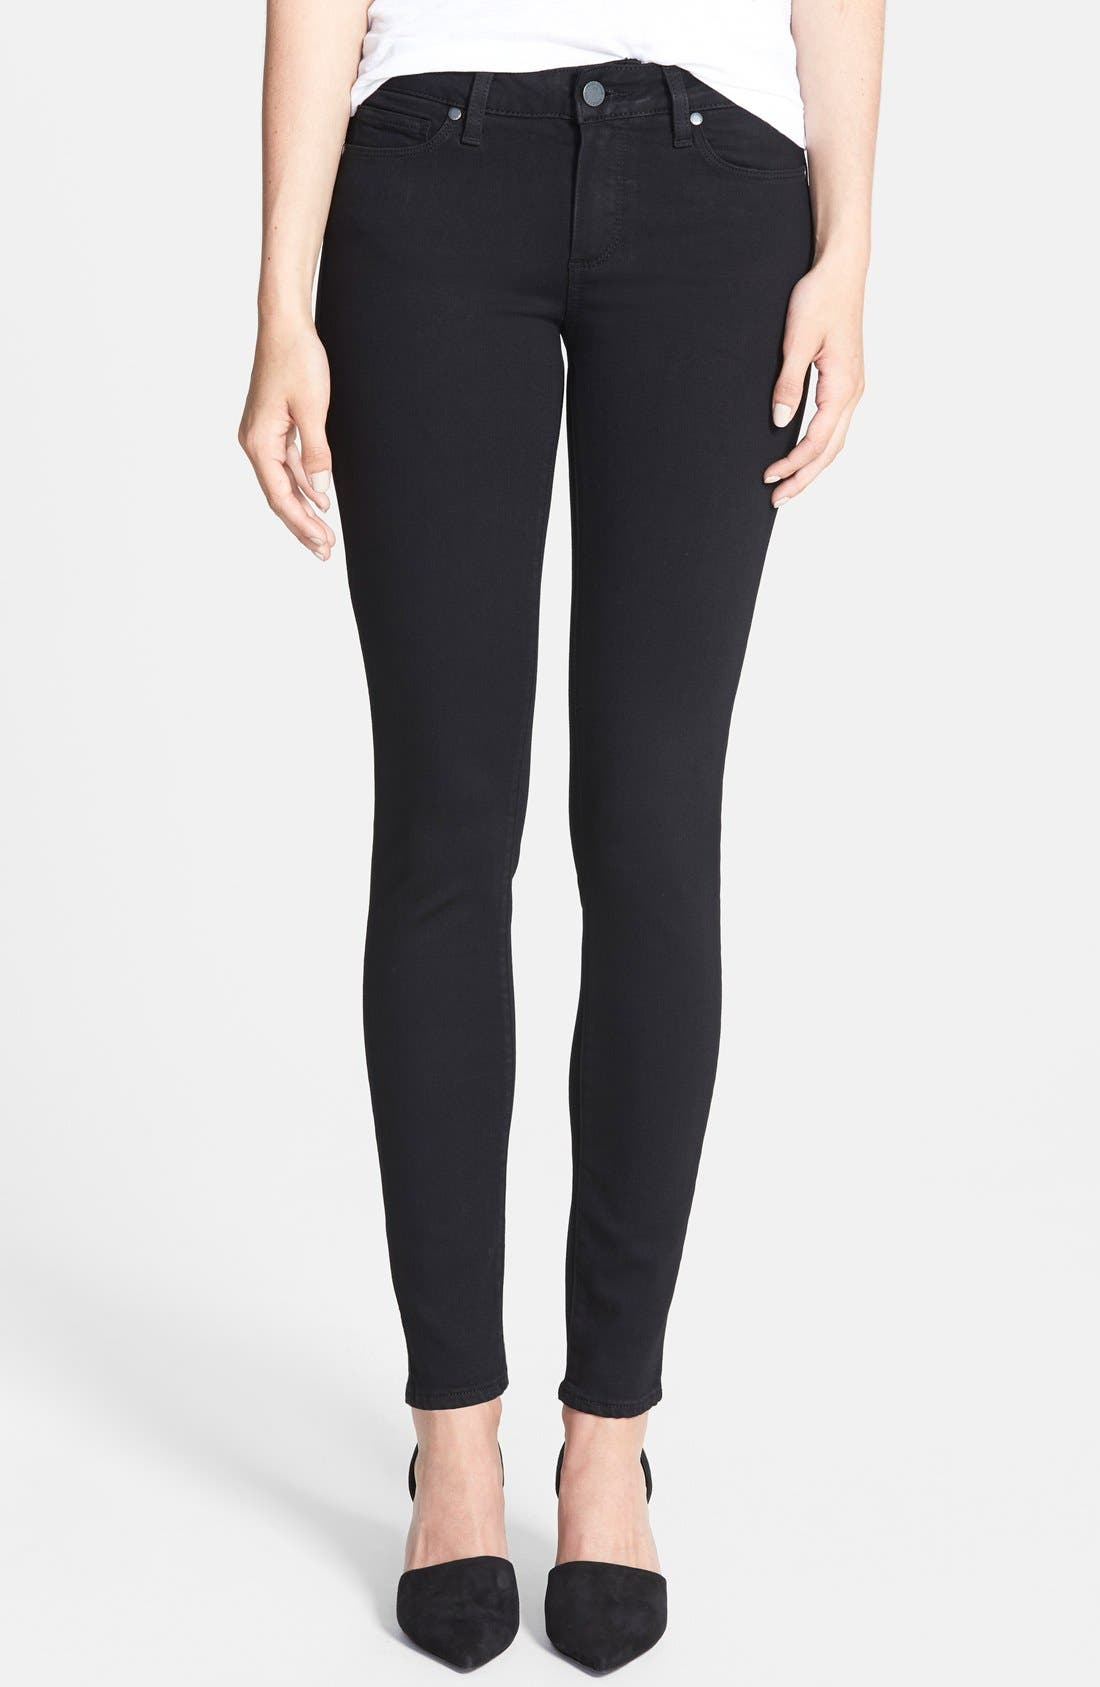 Main Image - PAIGE Transcend - Verdugo Ultra Skinny Jeans (Black Shadow)